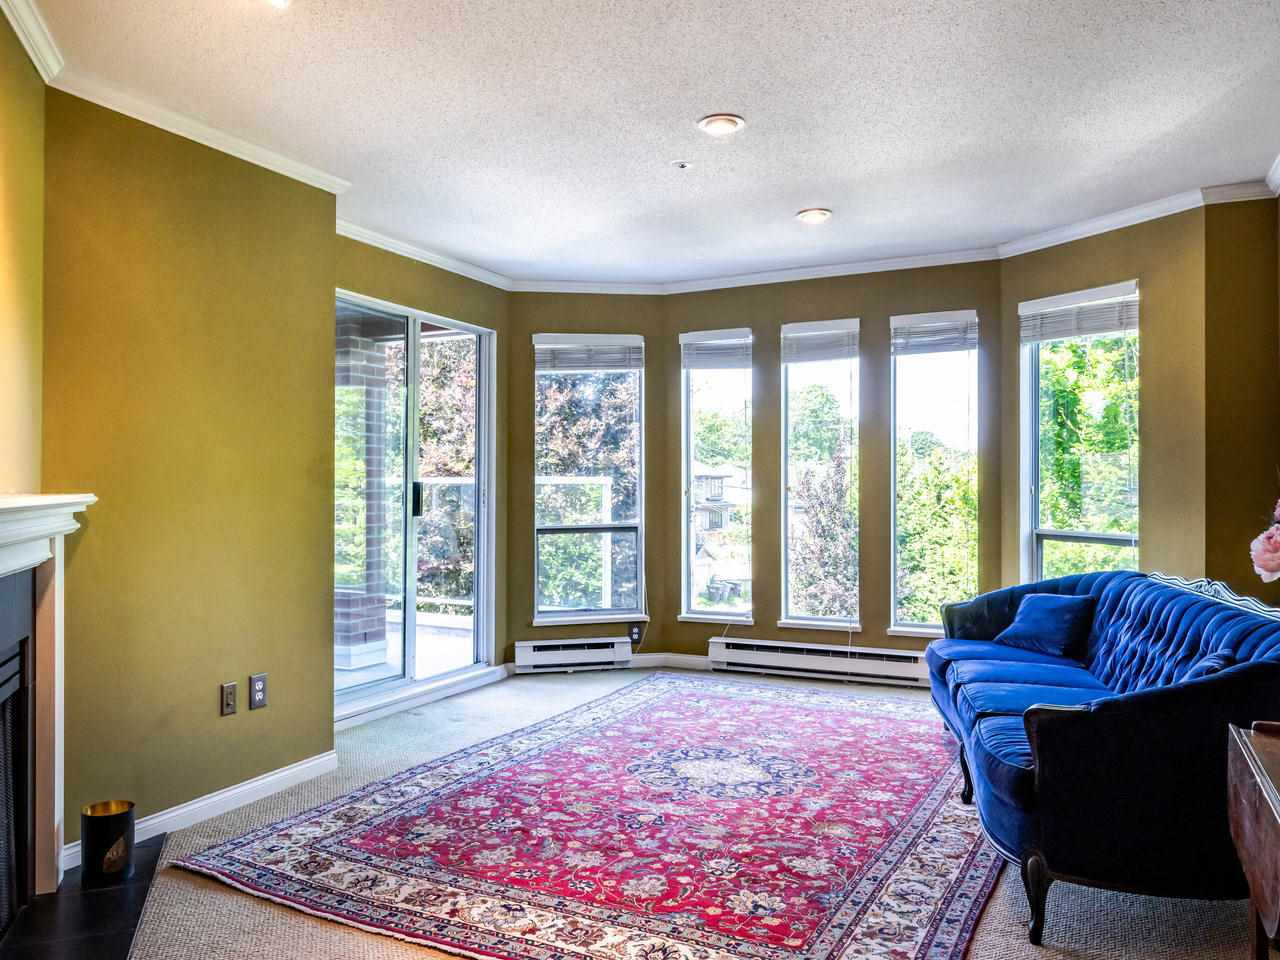 """Photo 9: Photos: 303 2288 W 12TH Avenue in Vancouver: Kitsilano Condo for sale in """"Connaught Point"""" (Vancouver West)  : MLS®# R2494985"""